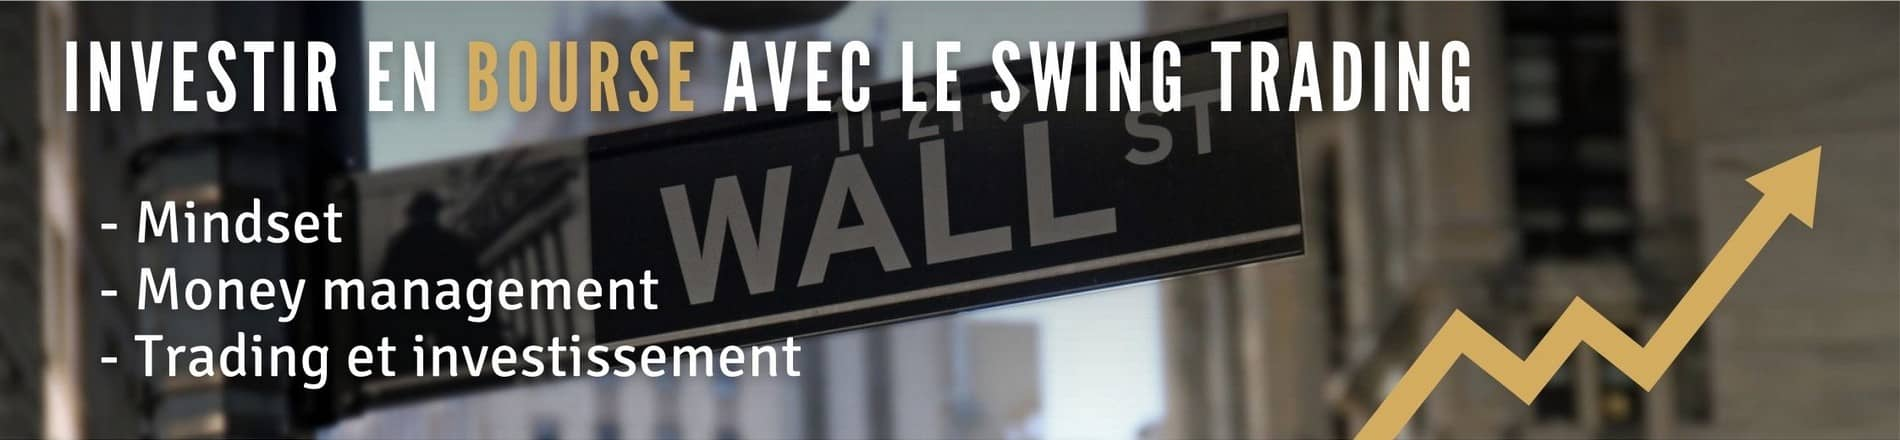 Le swing trading ultra rentable avec swingbourse.com